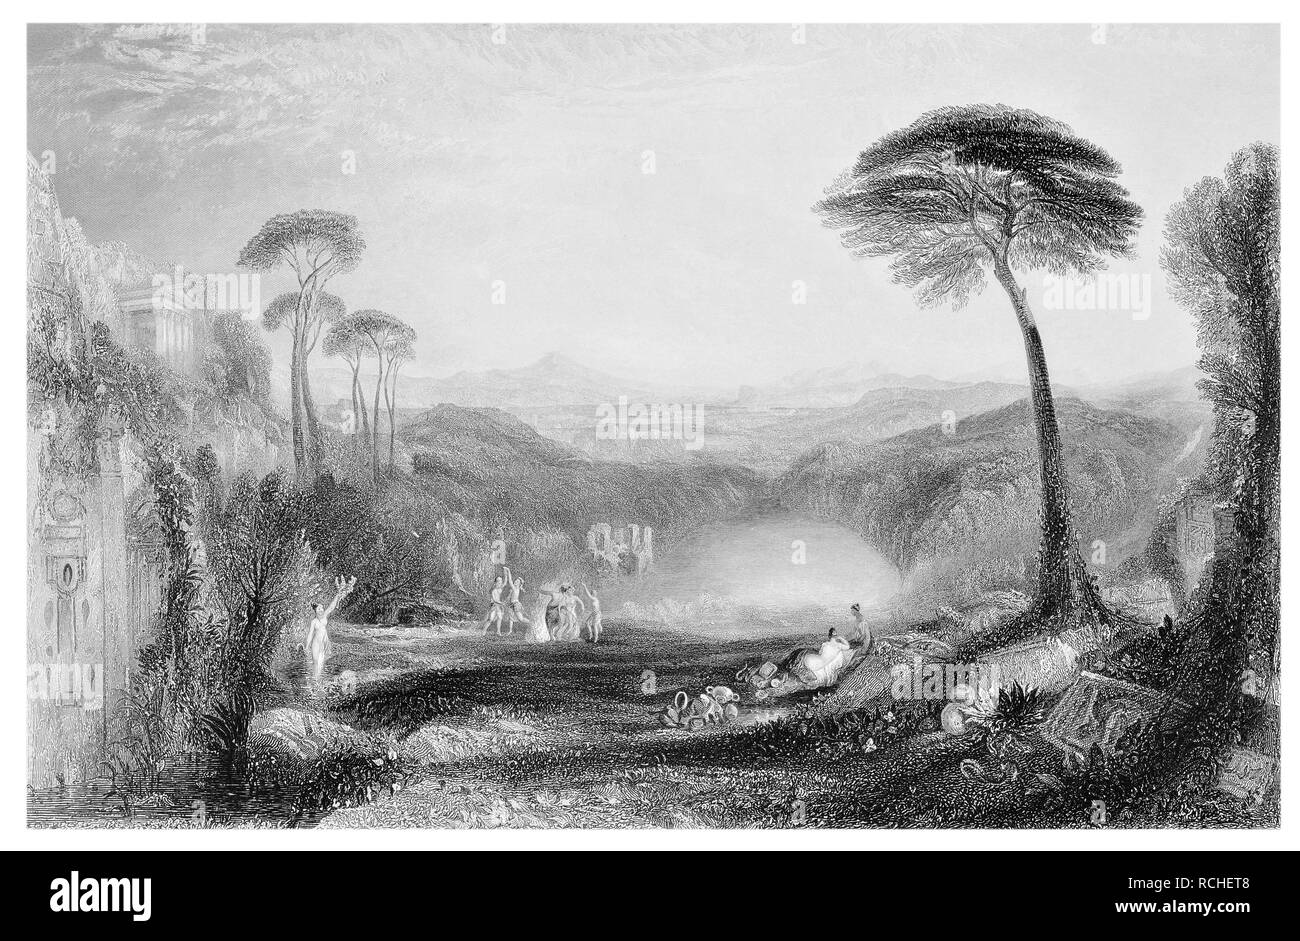 J.M.W Turner The Golden Bough engraved by T. A. Prior - Stock Image